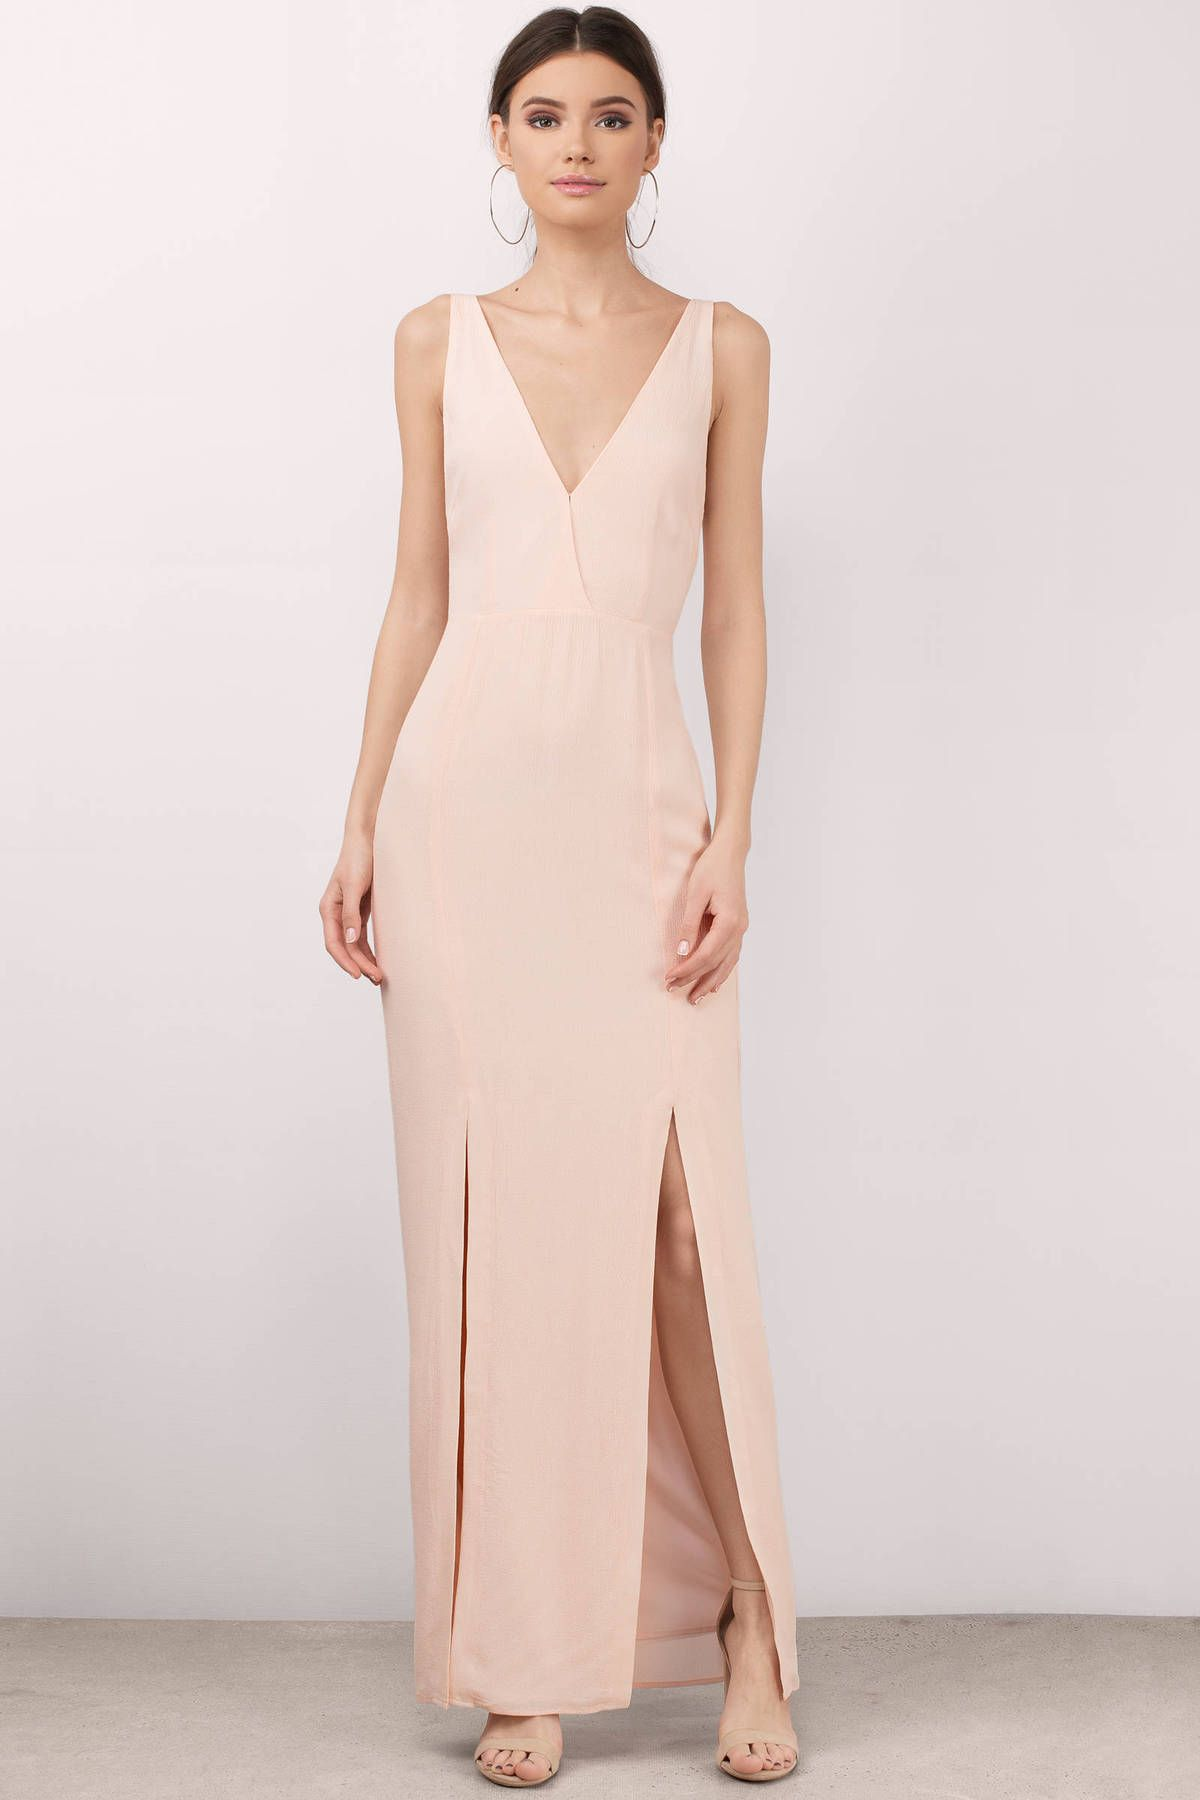 bbd39d67df7 Noemie Plunging Slit Maxi Dress at Tobi.com  shoptobi